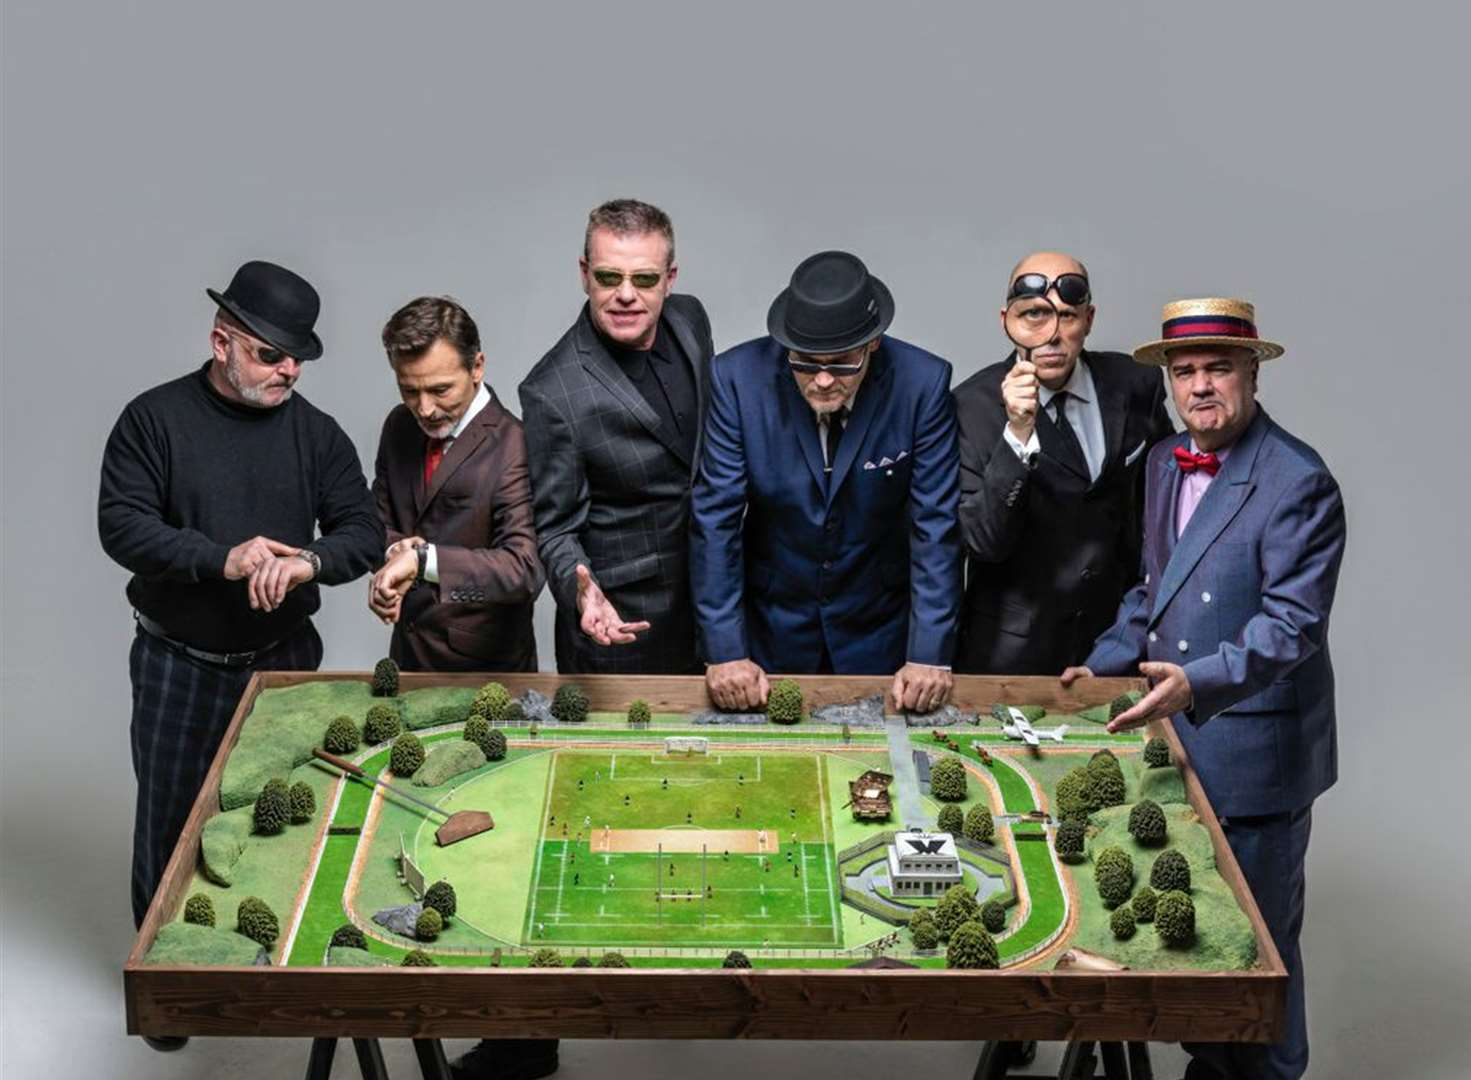 Madness tickets go on sale